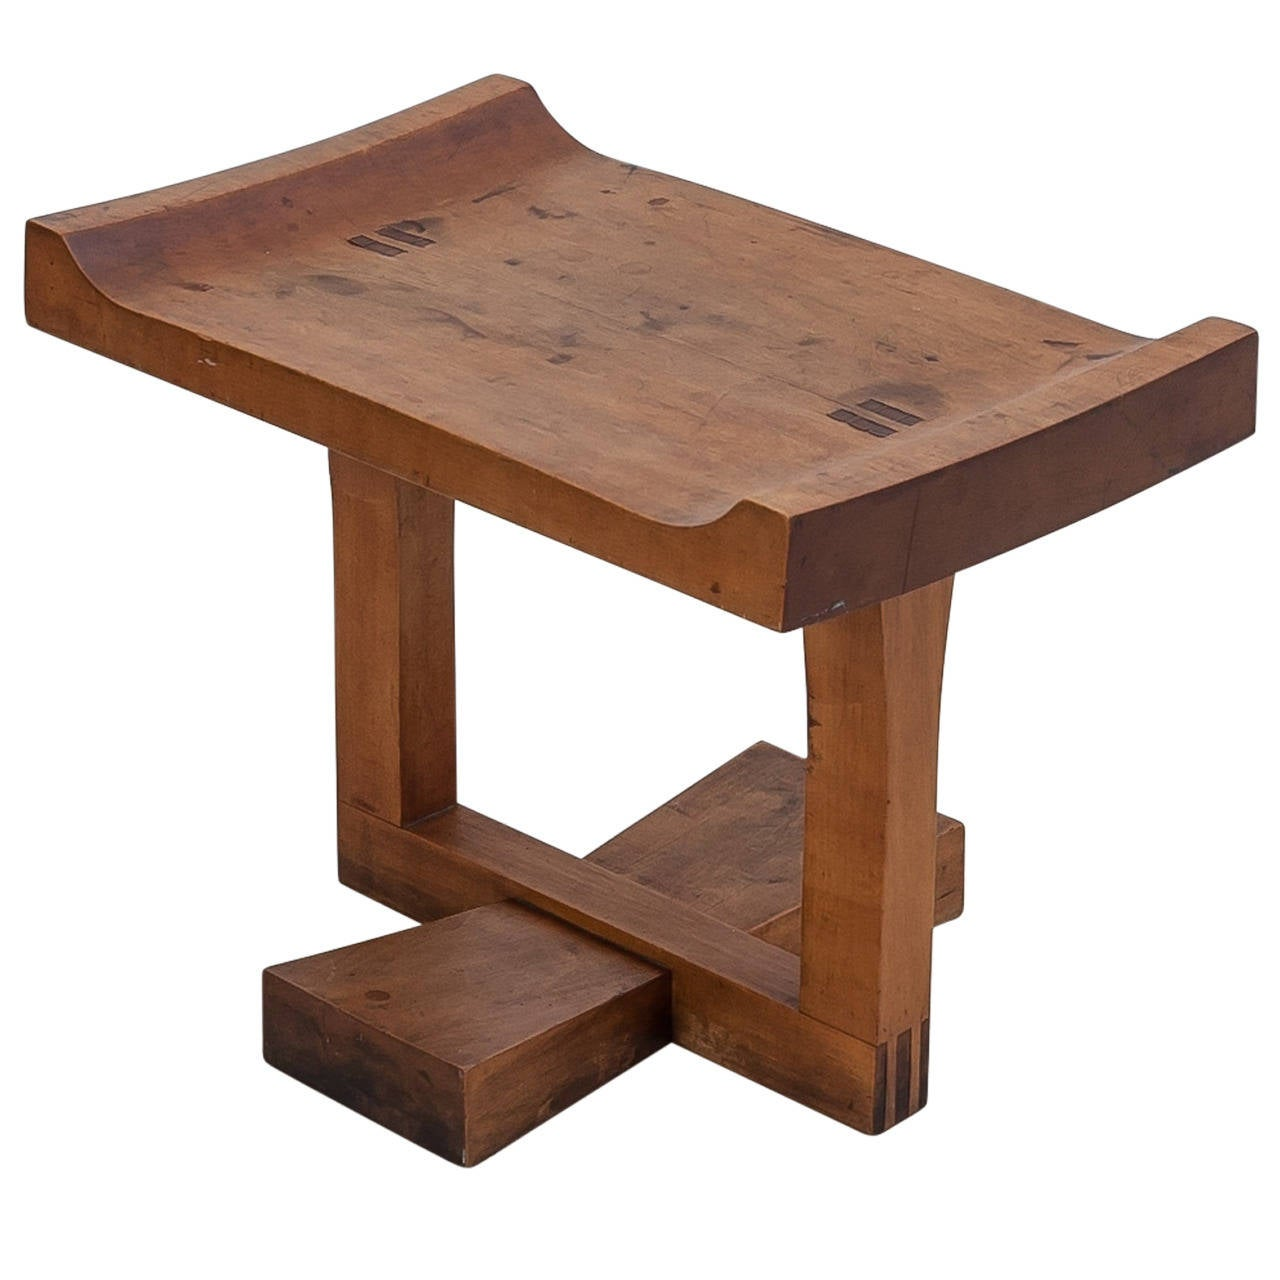 Exceptional Studio Craft Cherry Wood Bench Stool Or